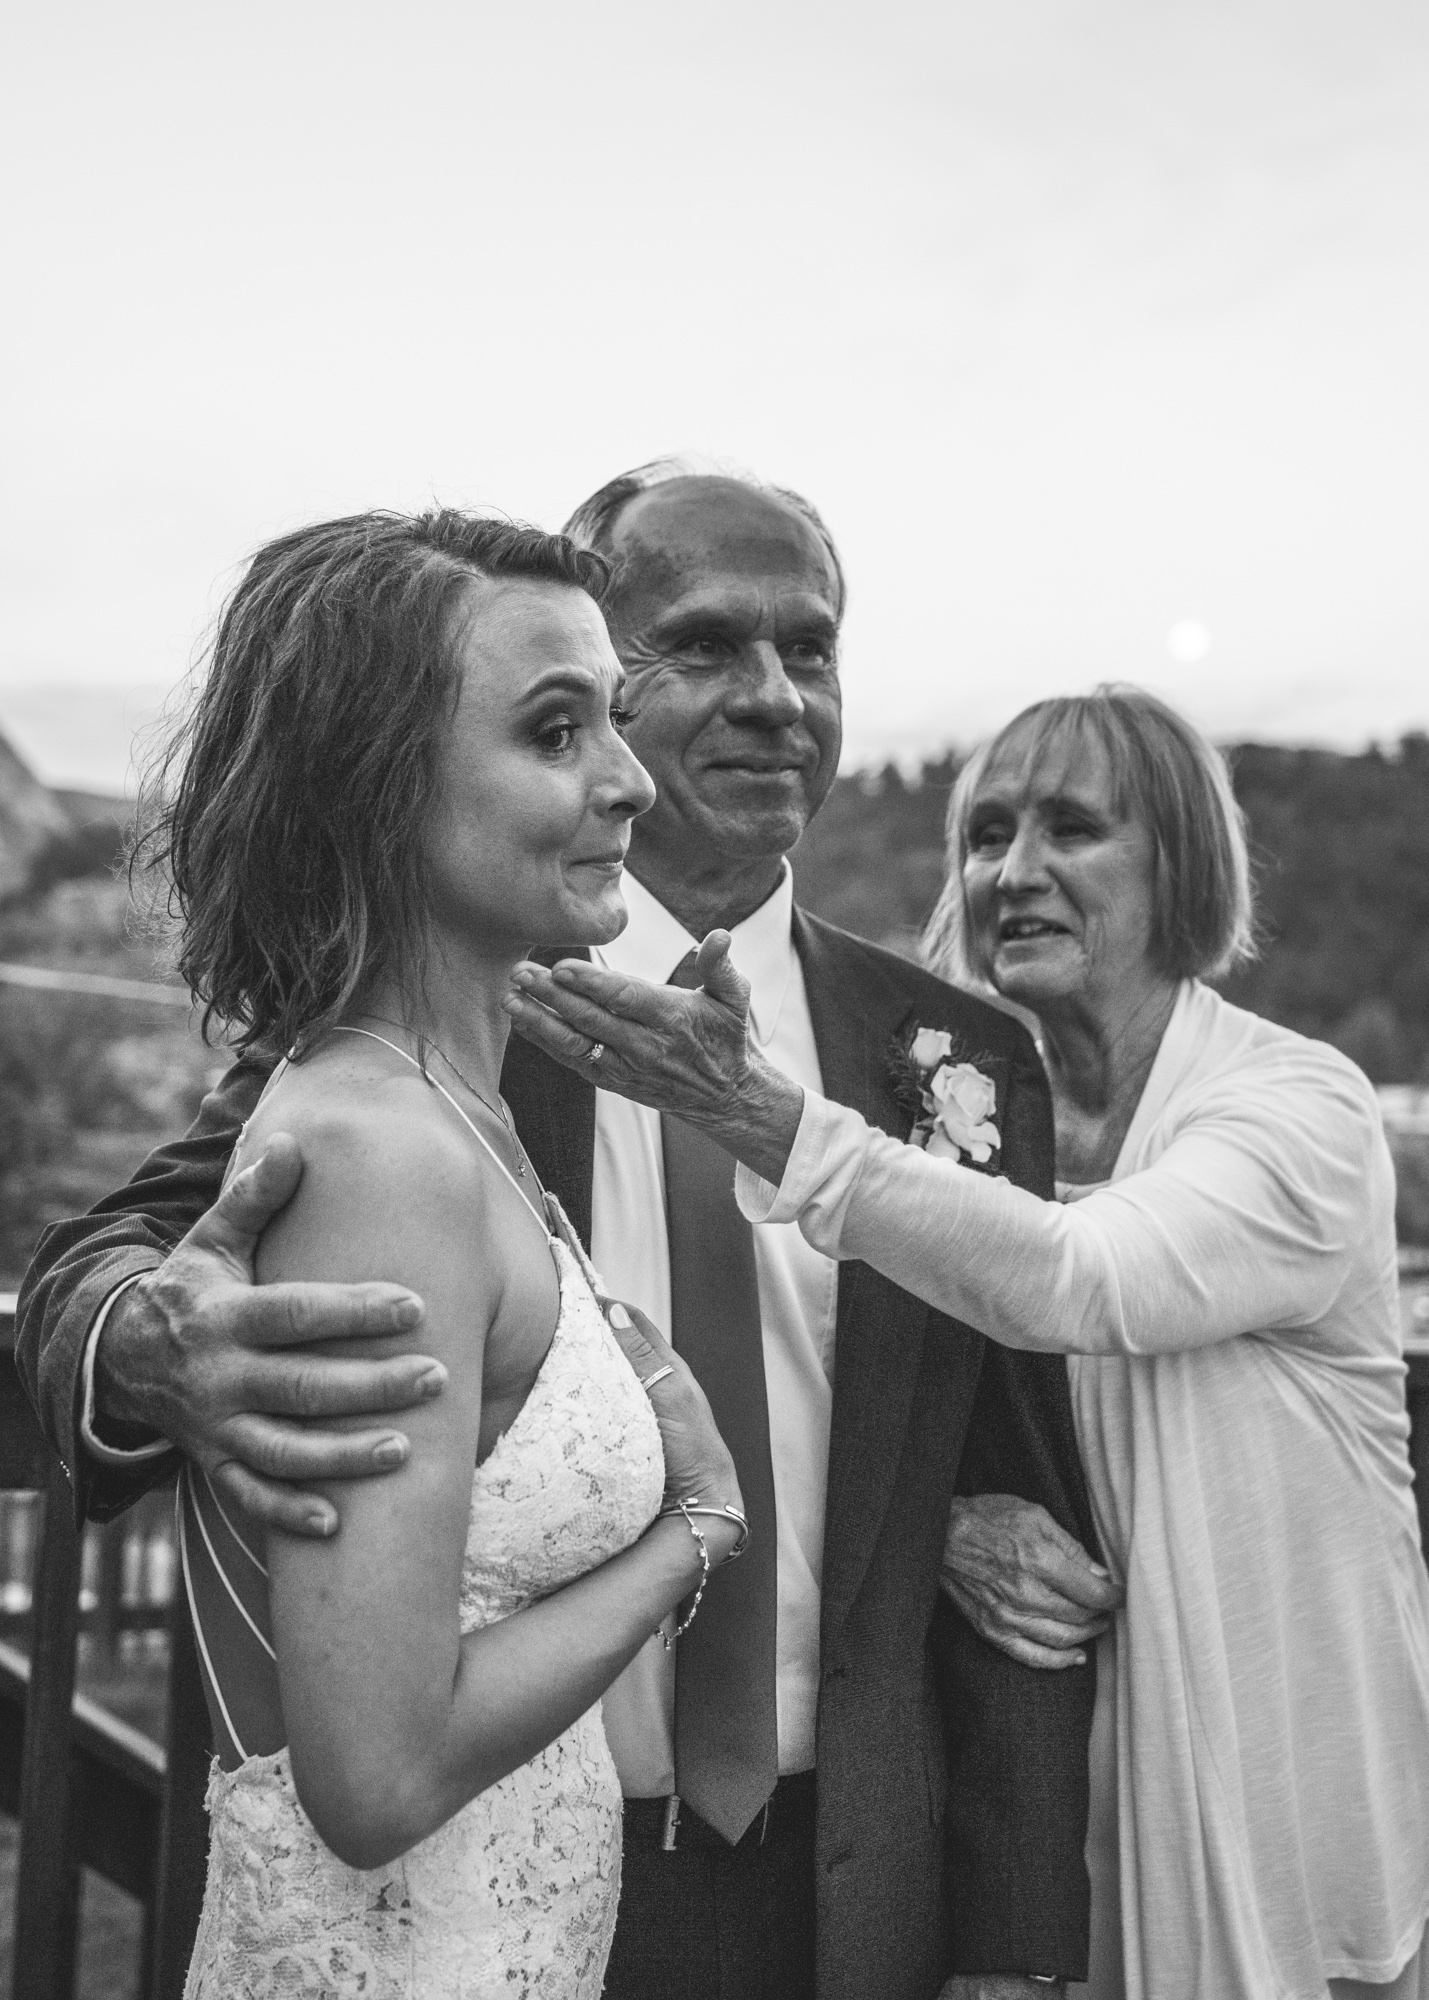 Black and white vertical image of a bride huddled together with her parents on the day of her wedding. The bride cries as she watches something off scene as her mother moves to place her hand on the bride's cheek. Taken during a wedding reception at the Bristlecone Inn in Estes Park, CO.